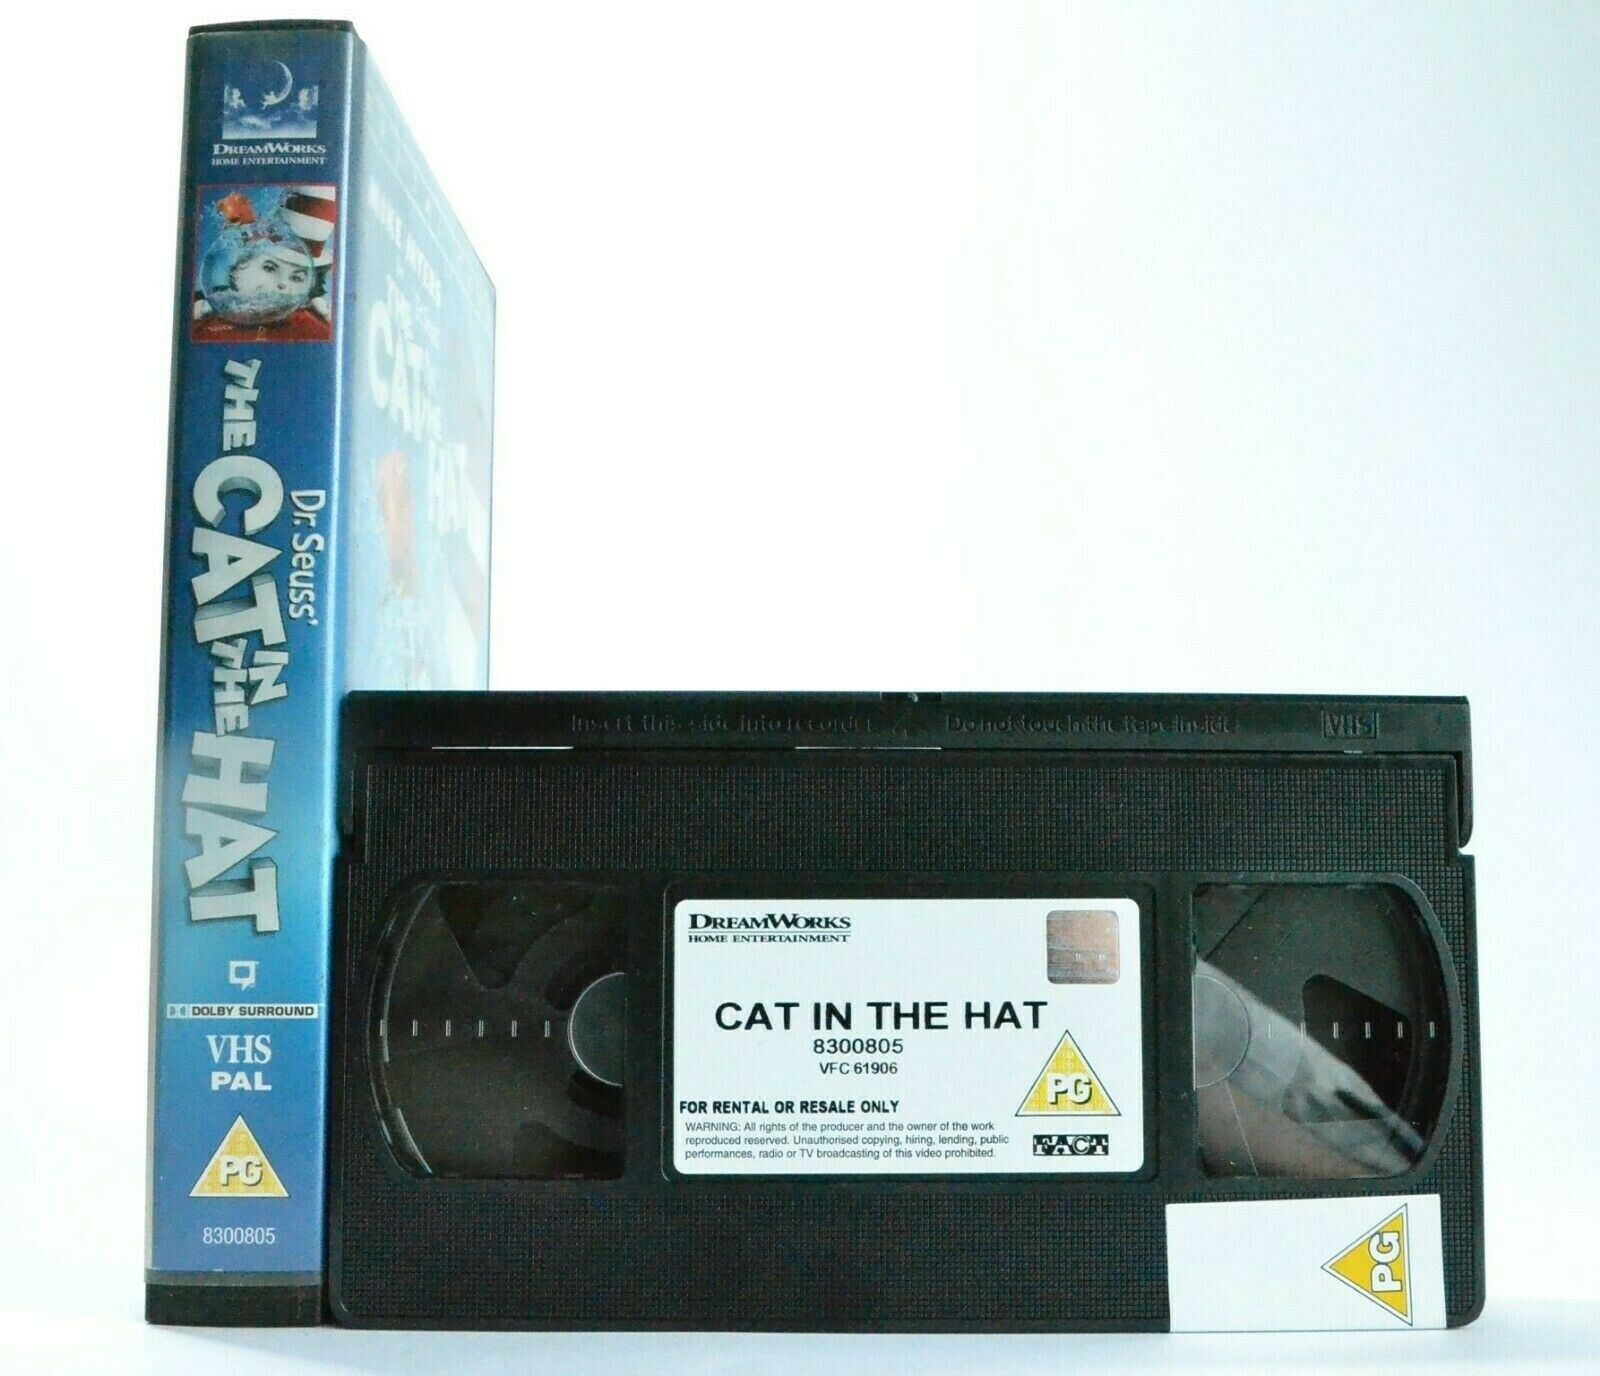 Dr.Seuss': The Cat In The Hat - Large Box Rental - Comedy - Children's - Pal VHS